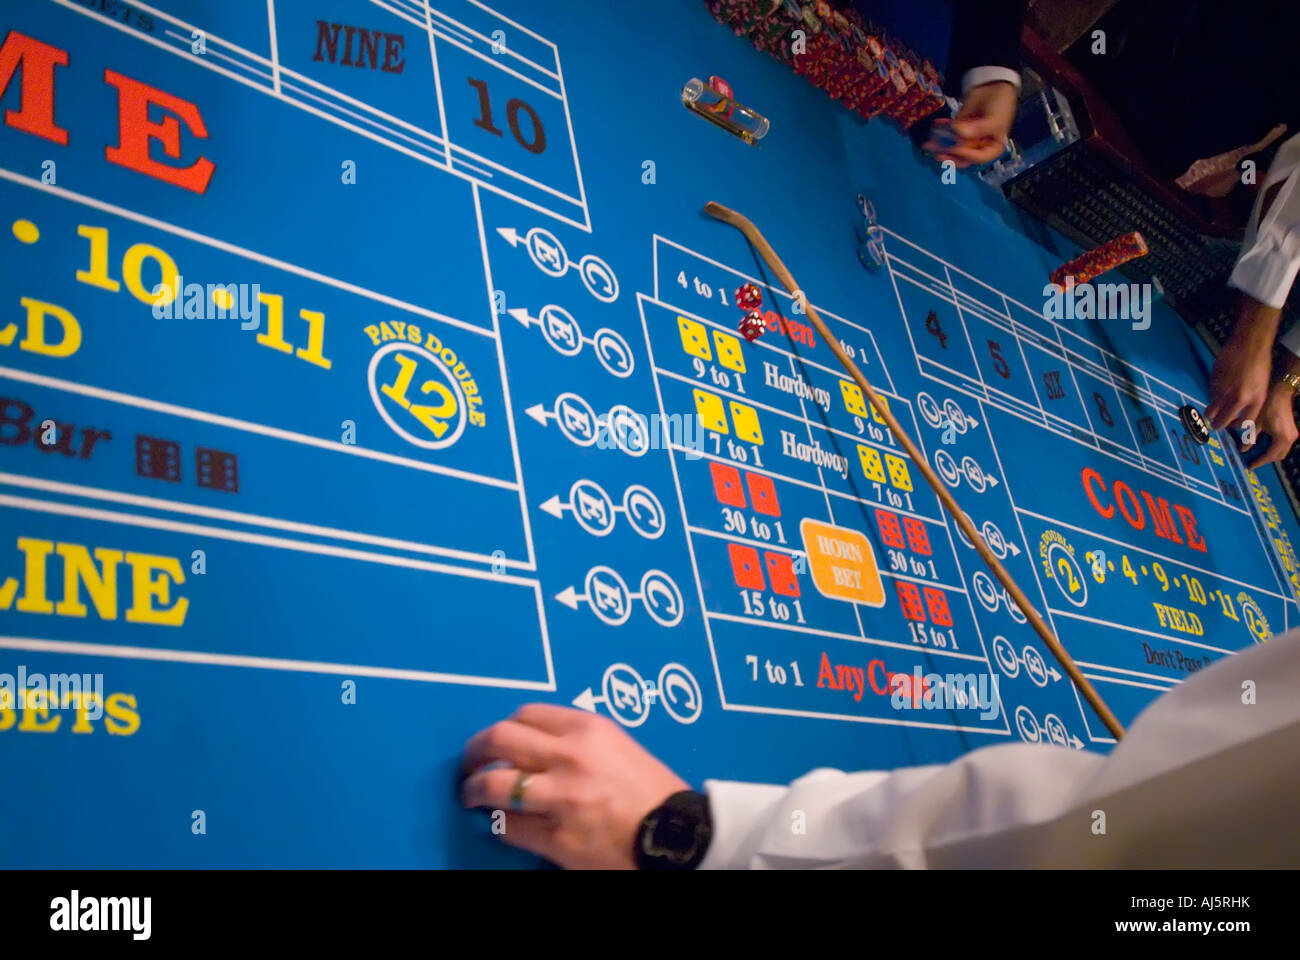 Gambling craps table action addiction addictive casino gambling game chance croupier dealer hands chips game game - Stock Image